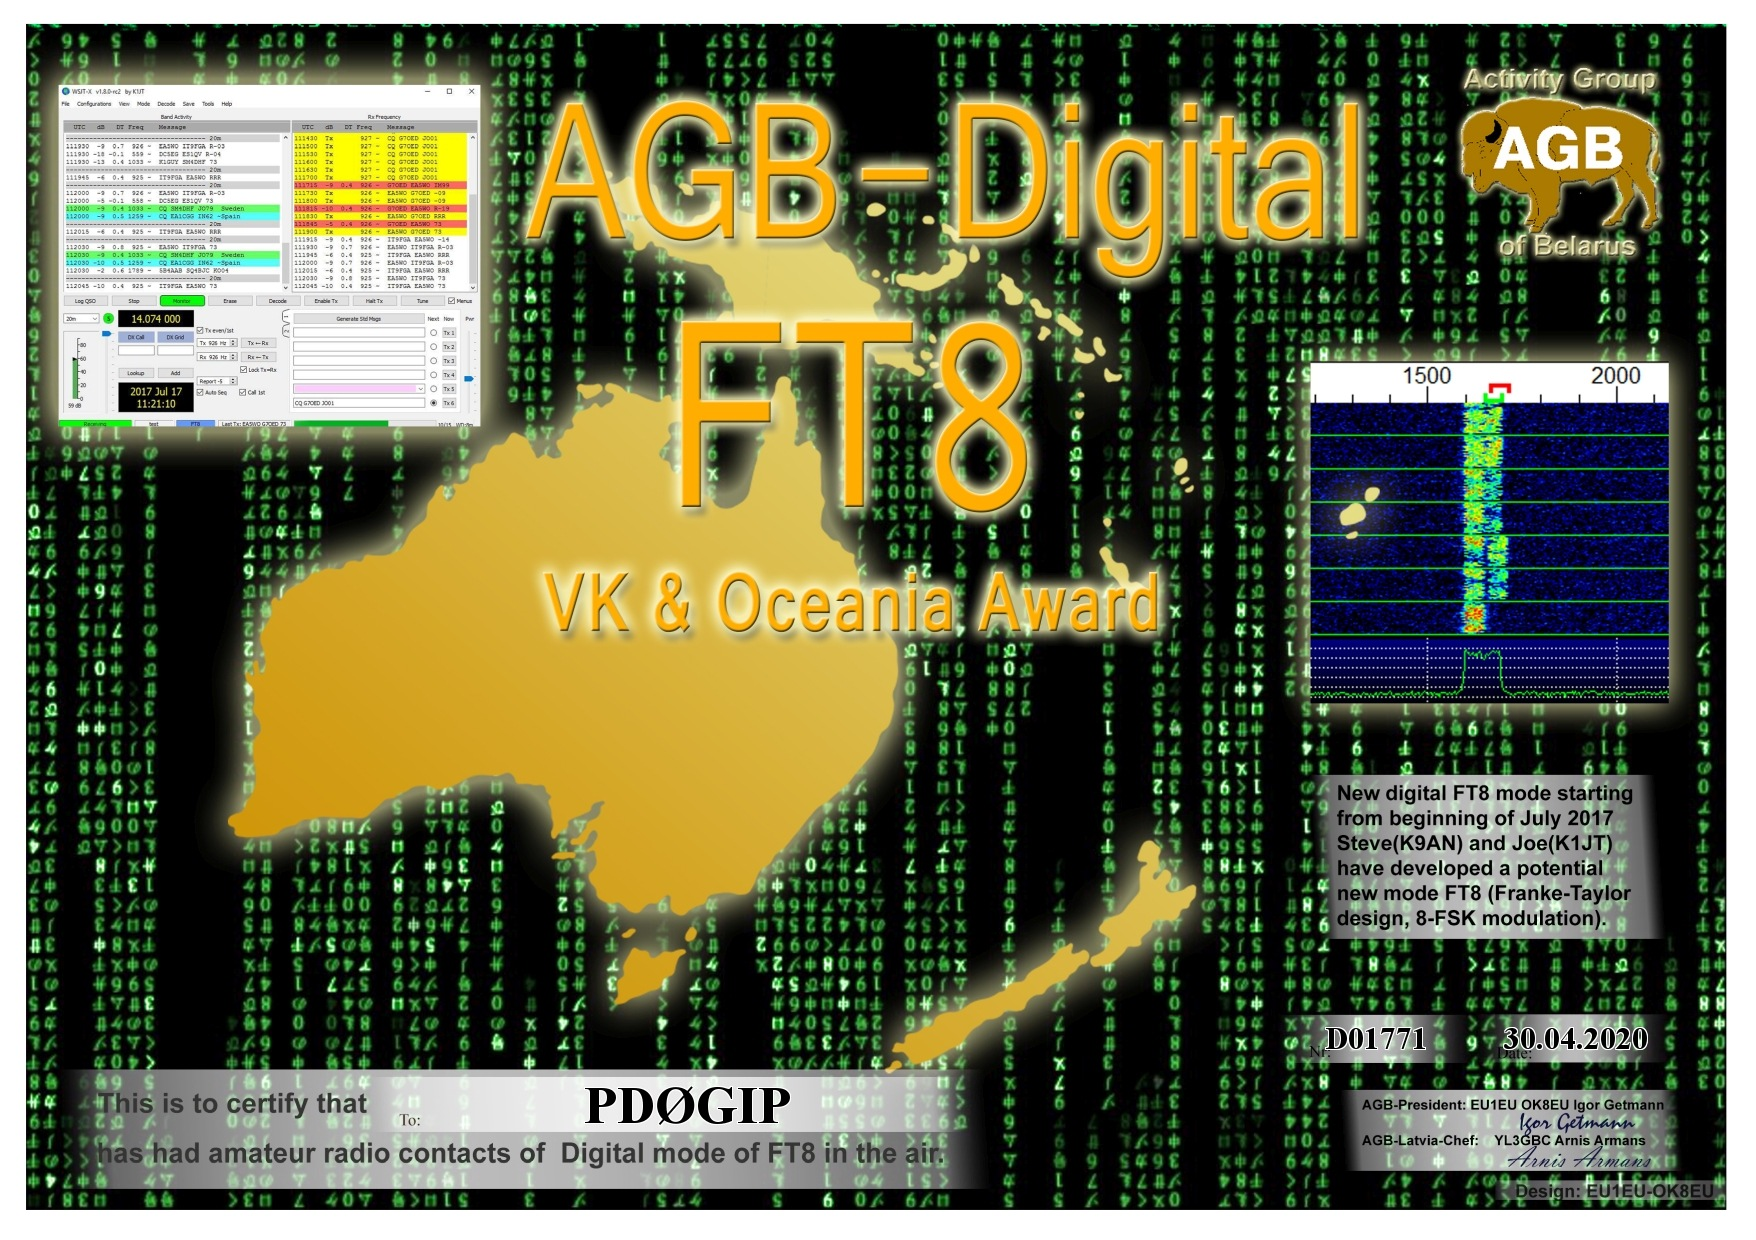 PD0GIP FT8 OCEANIA BASIC AGB